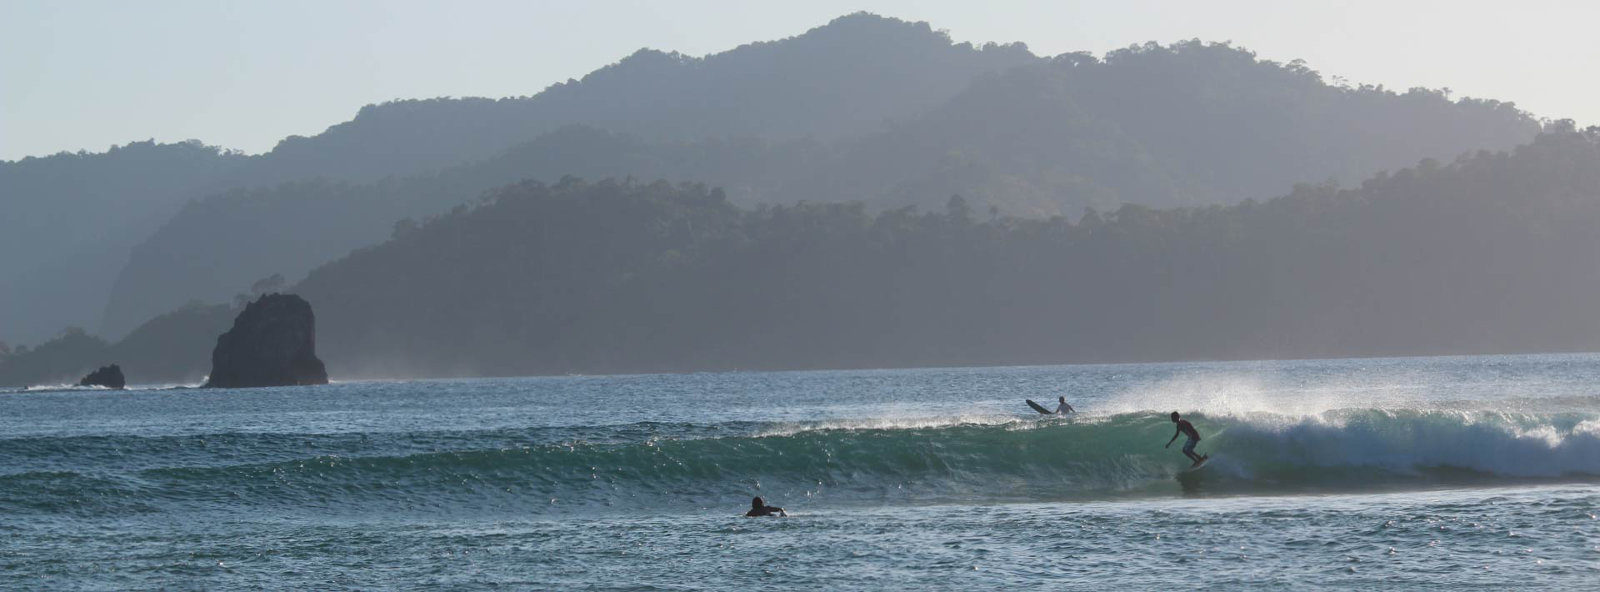 Beginner level surf coaching camp in Indonesia.